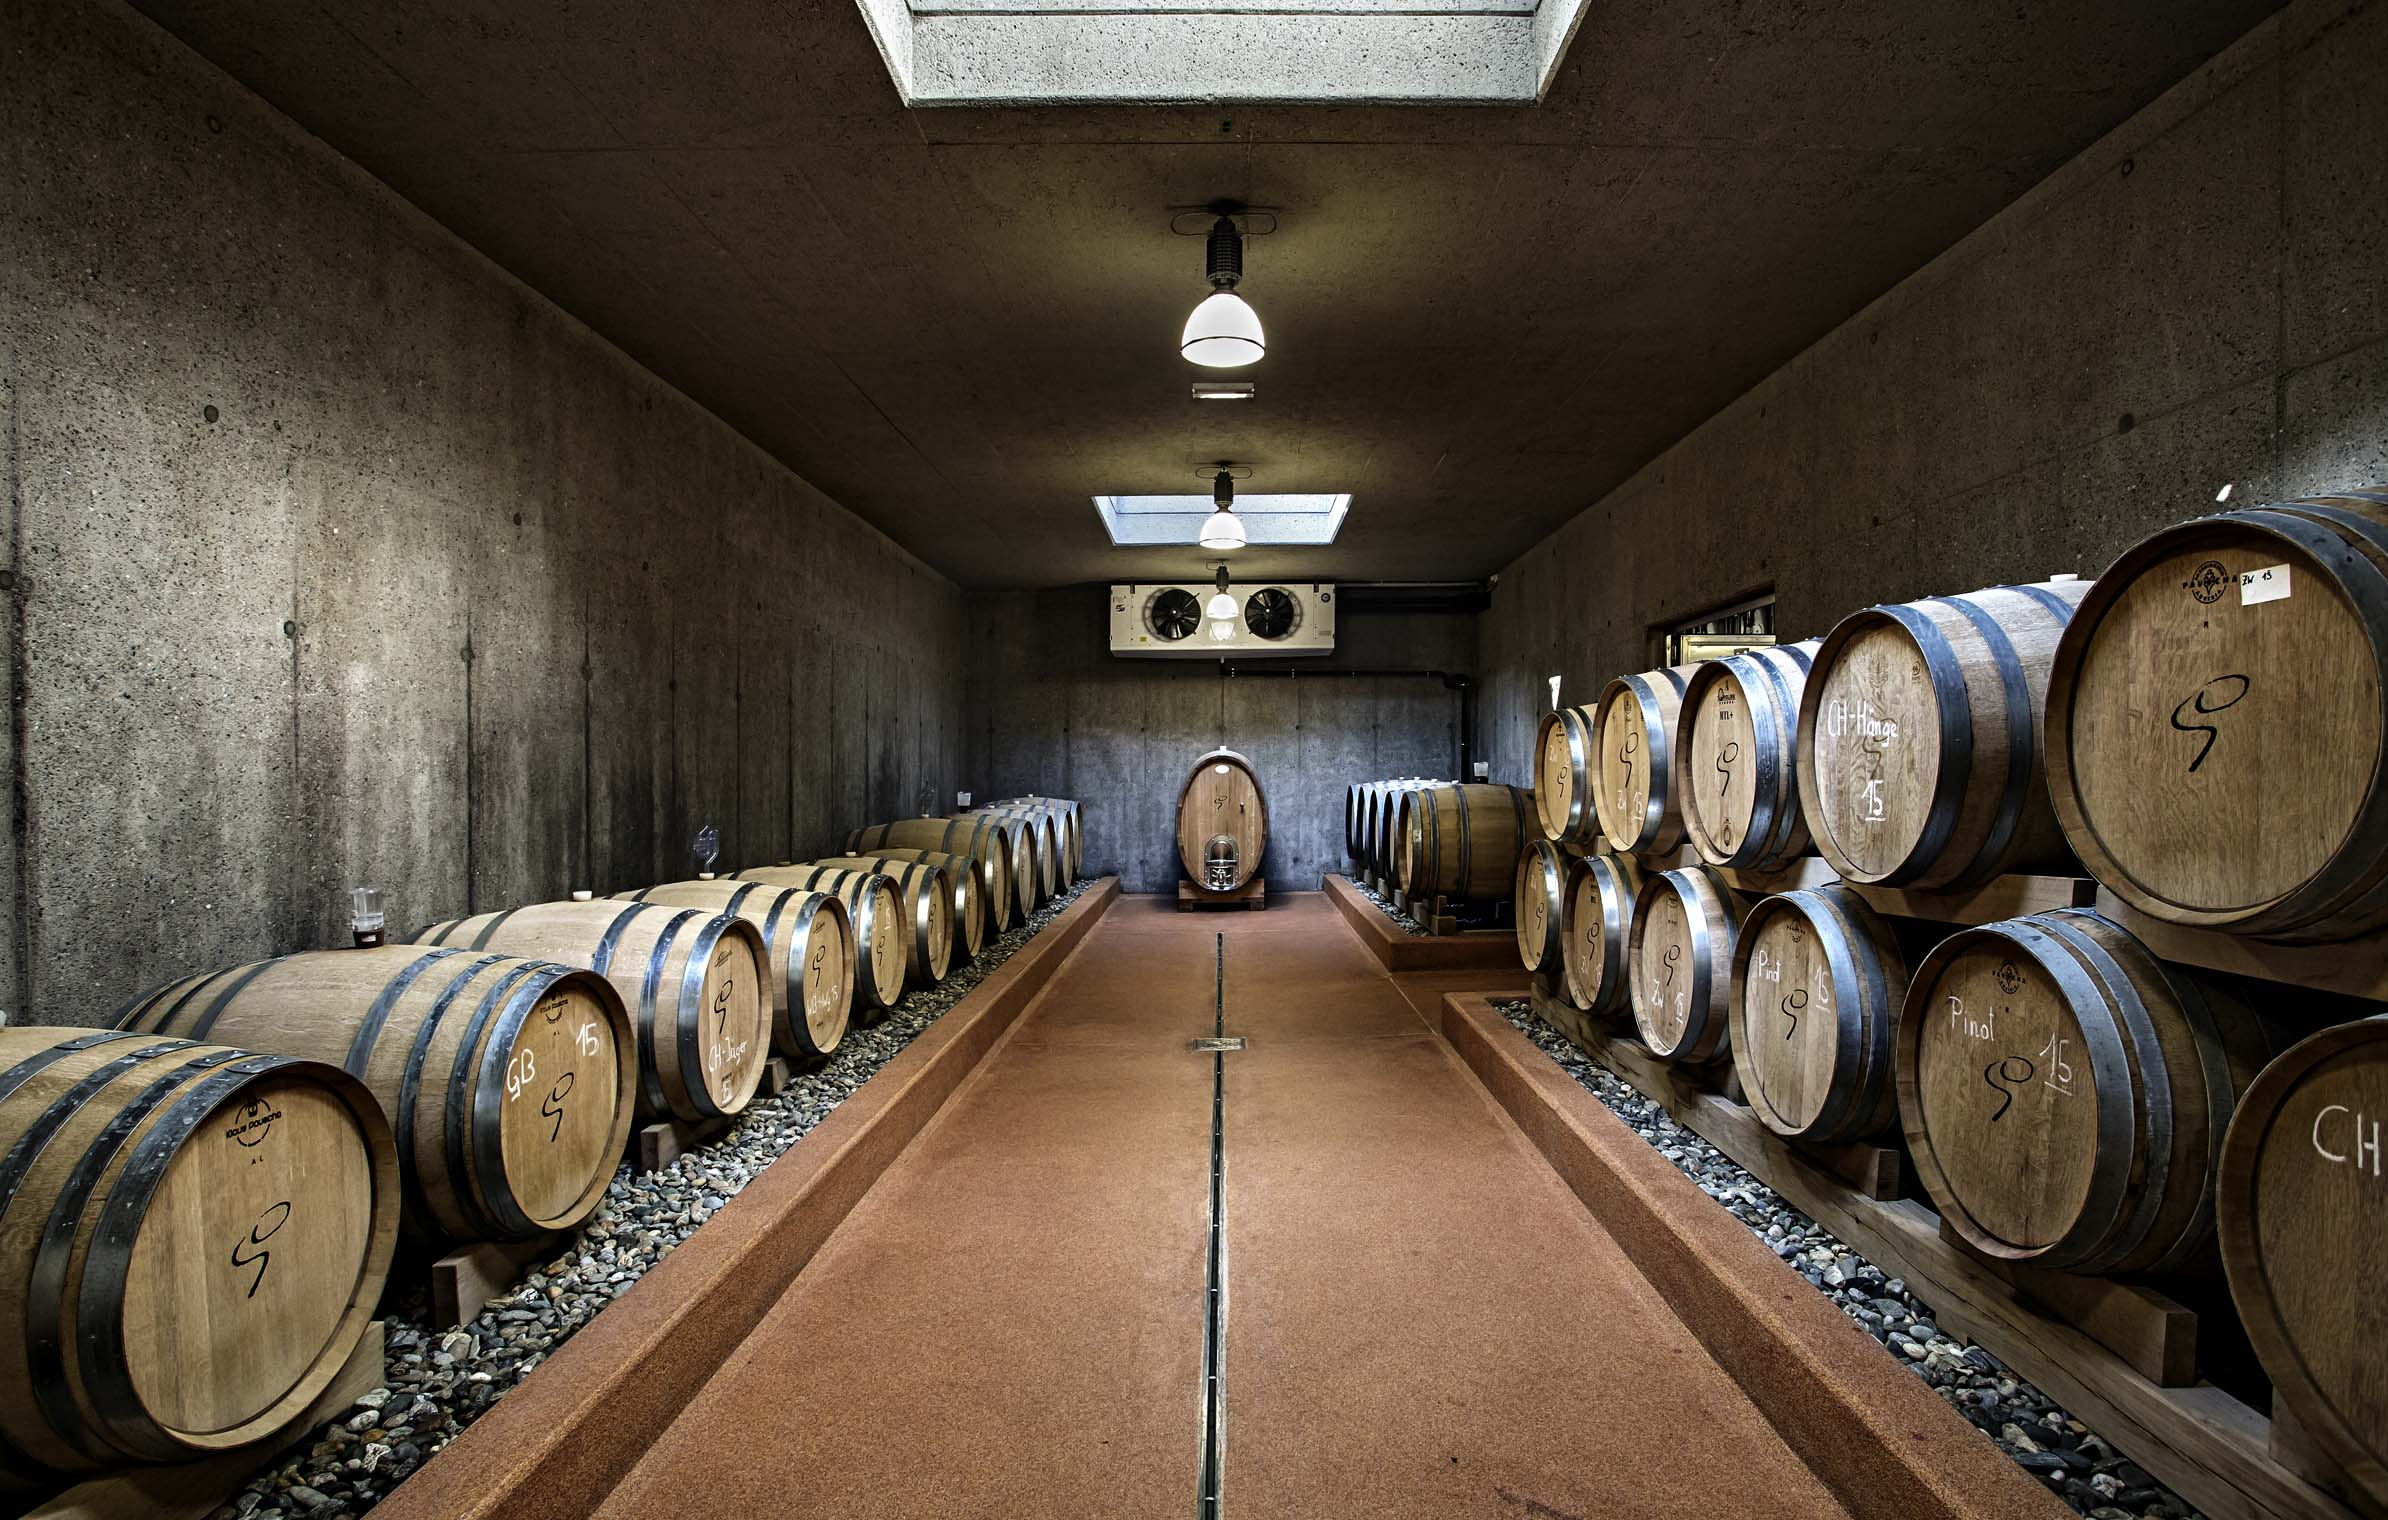 goedwinemakers_wine_cellar_view